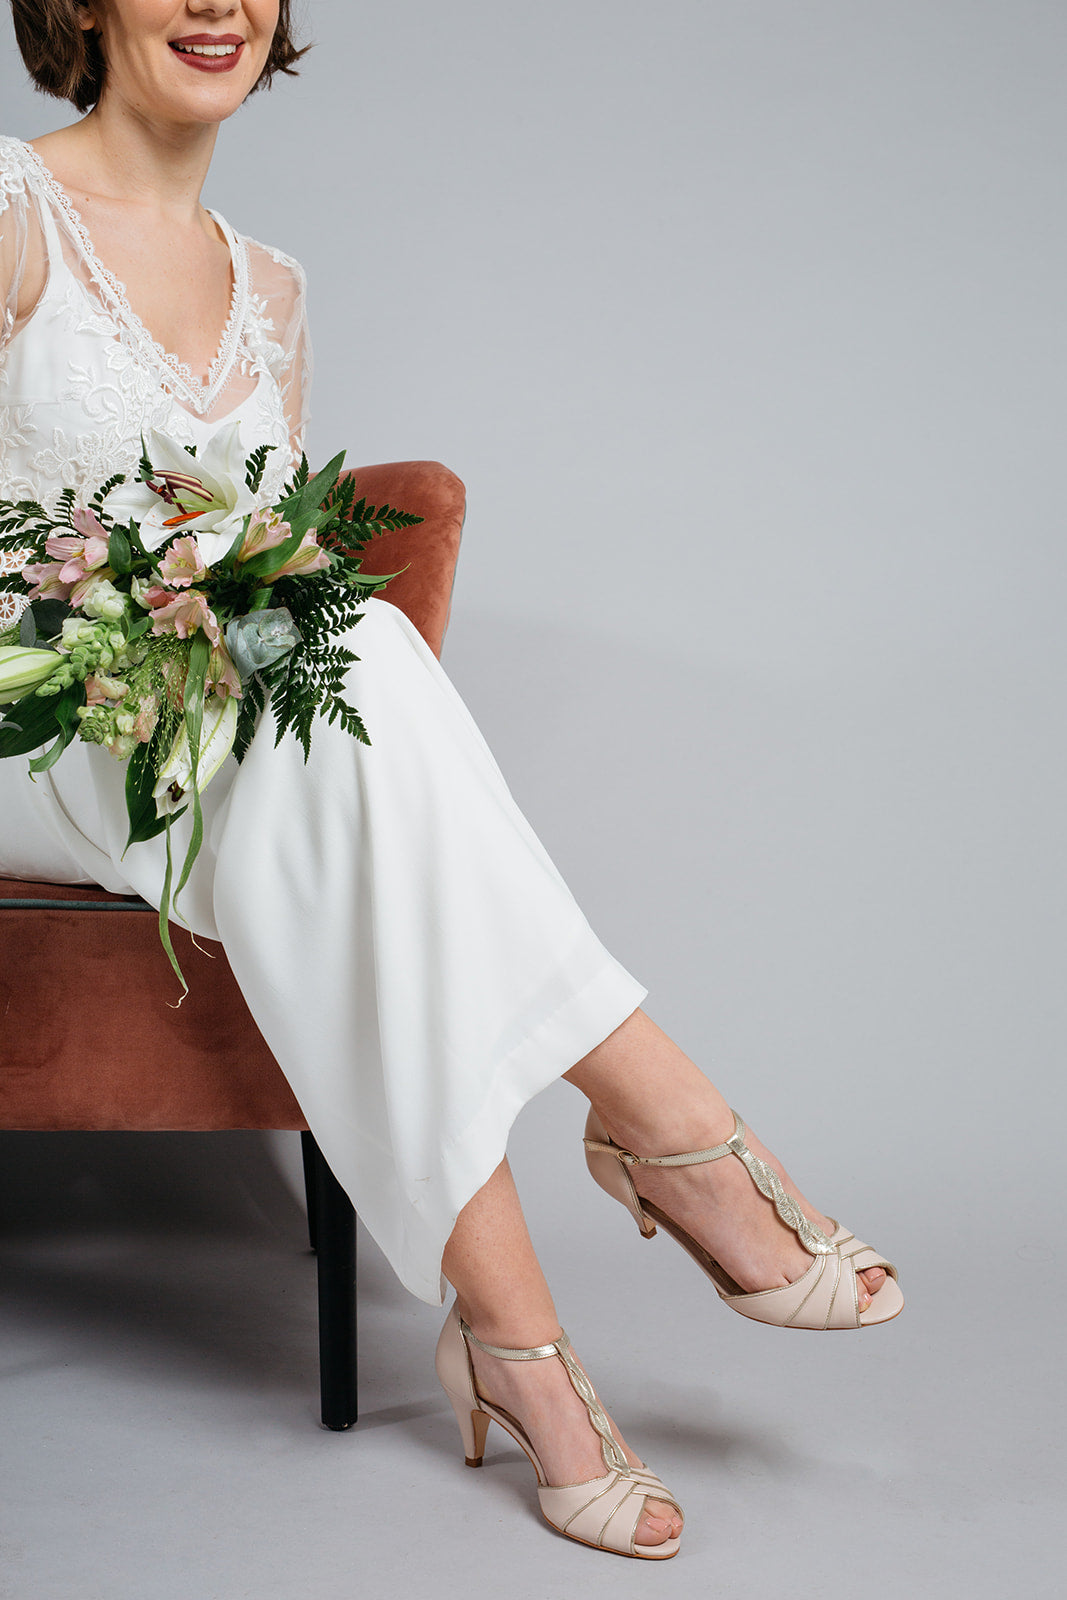 Rachel Simpson Etienne nude wedding shoes